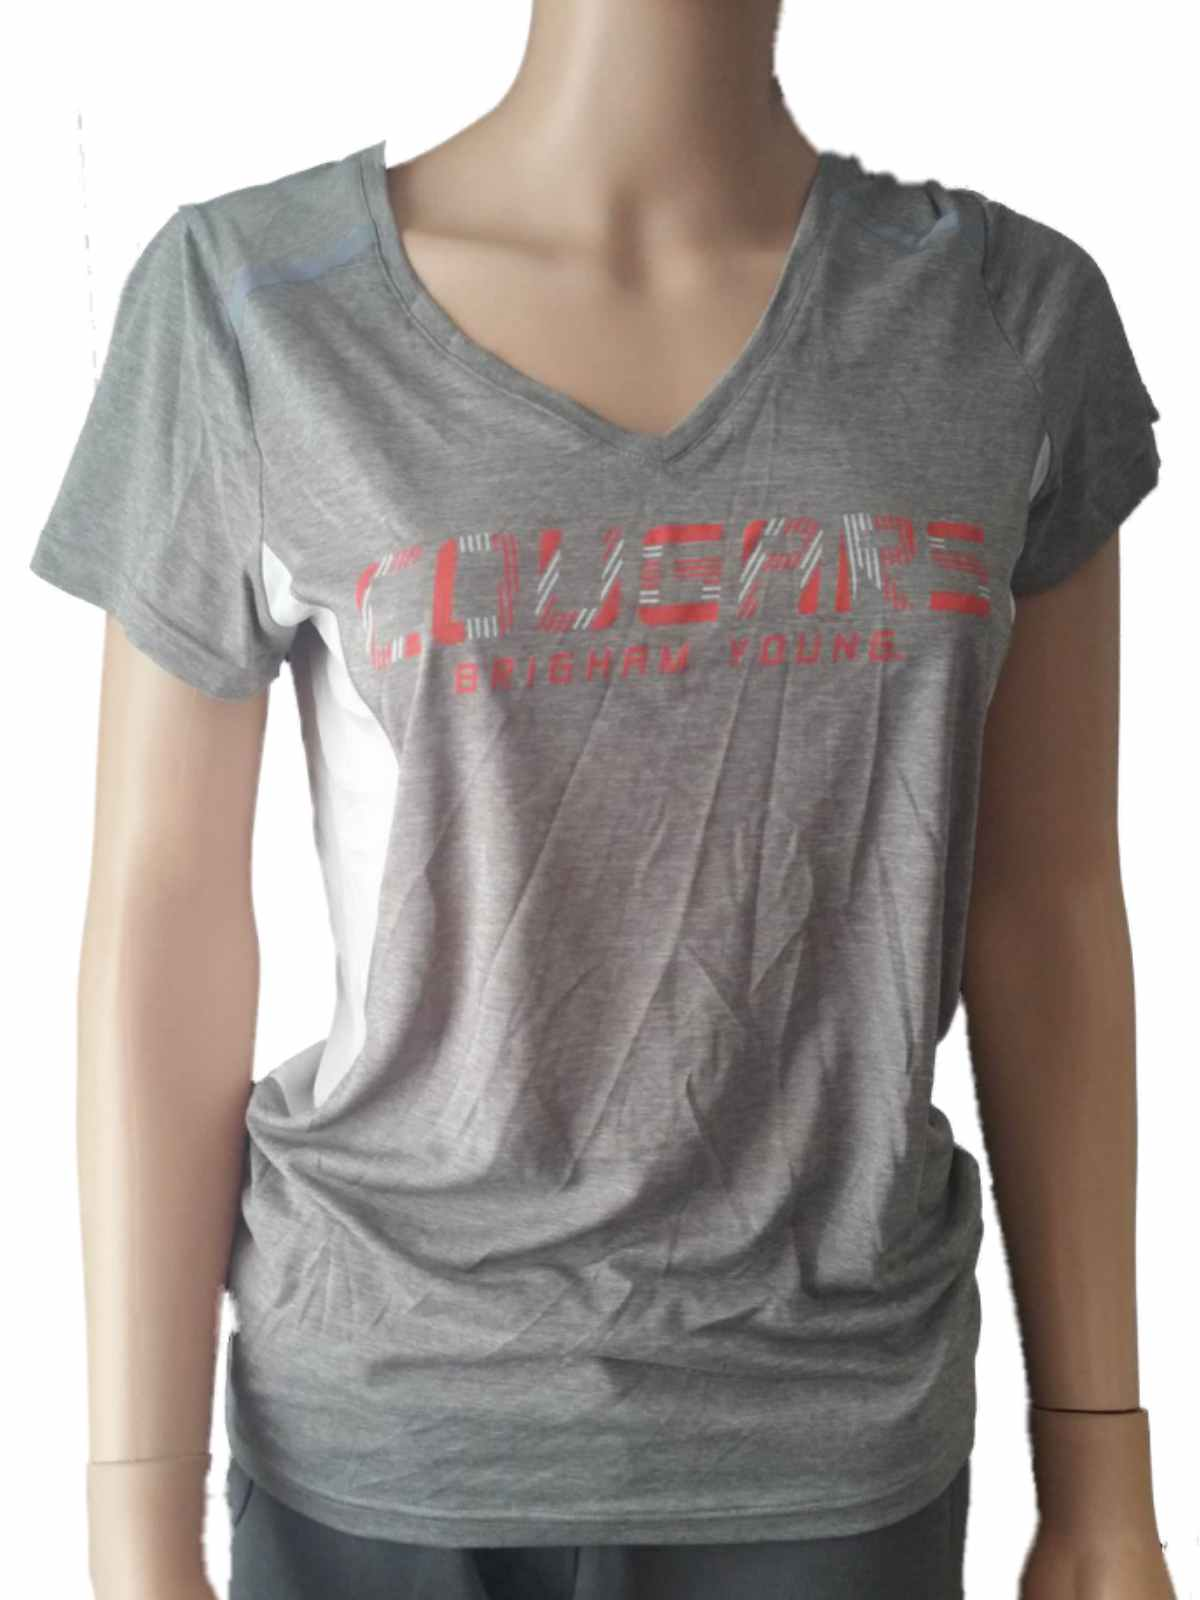 ed6a93930 Details about BYU Cougars Champion PowerTrain WOMENS Gray Lightweight  V-Neck T-Shirt (M)